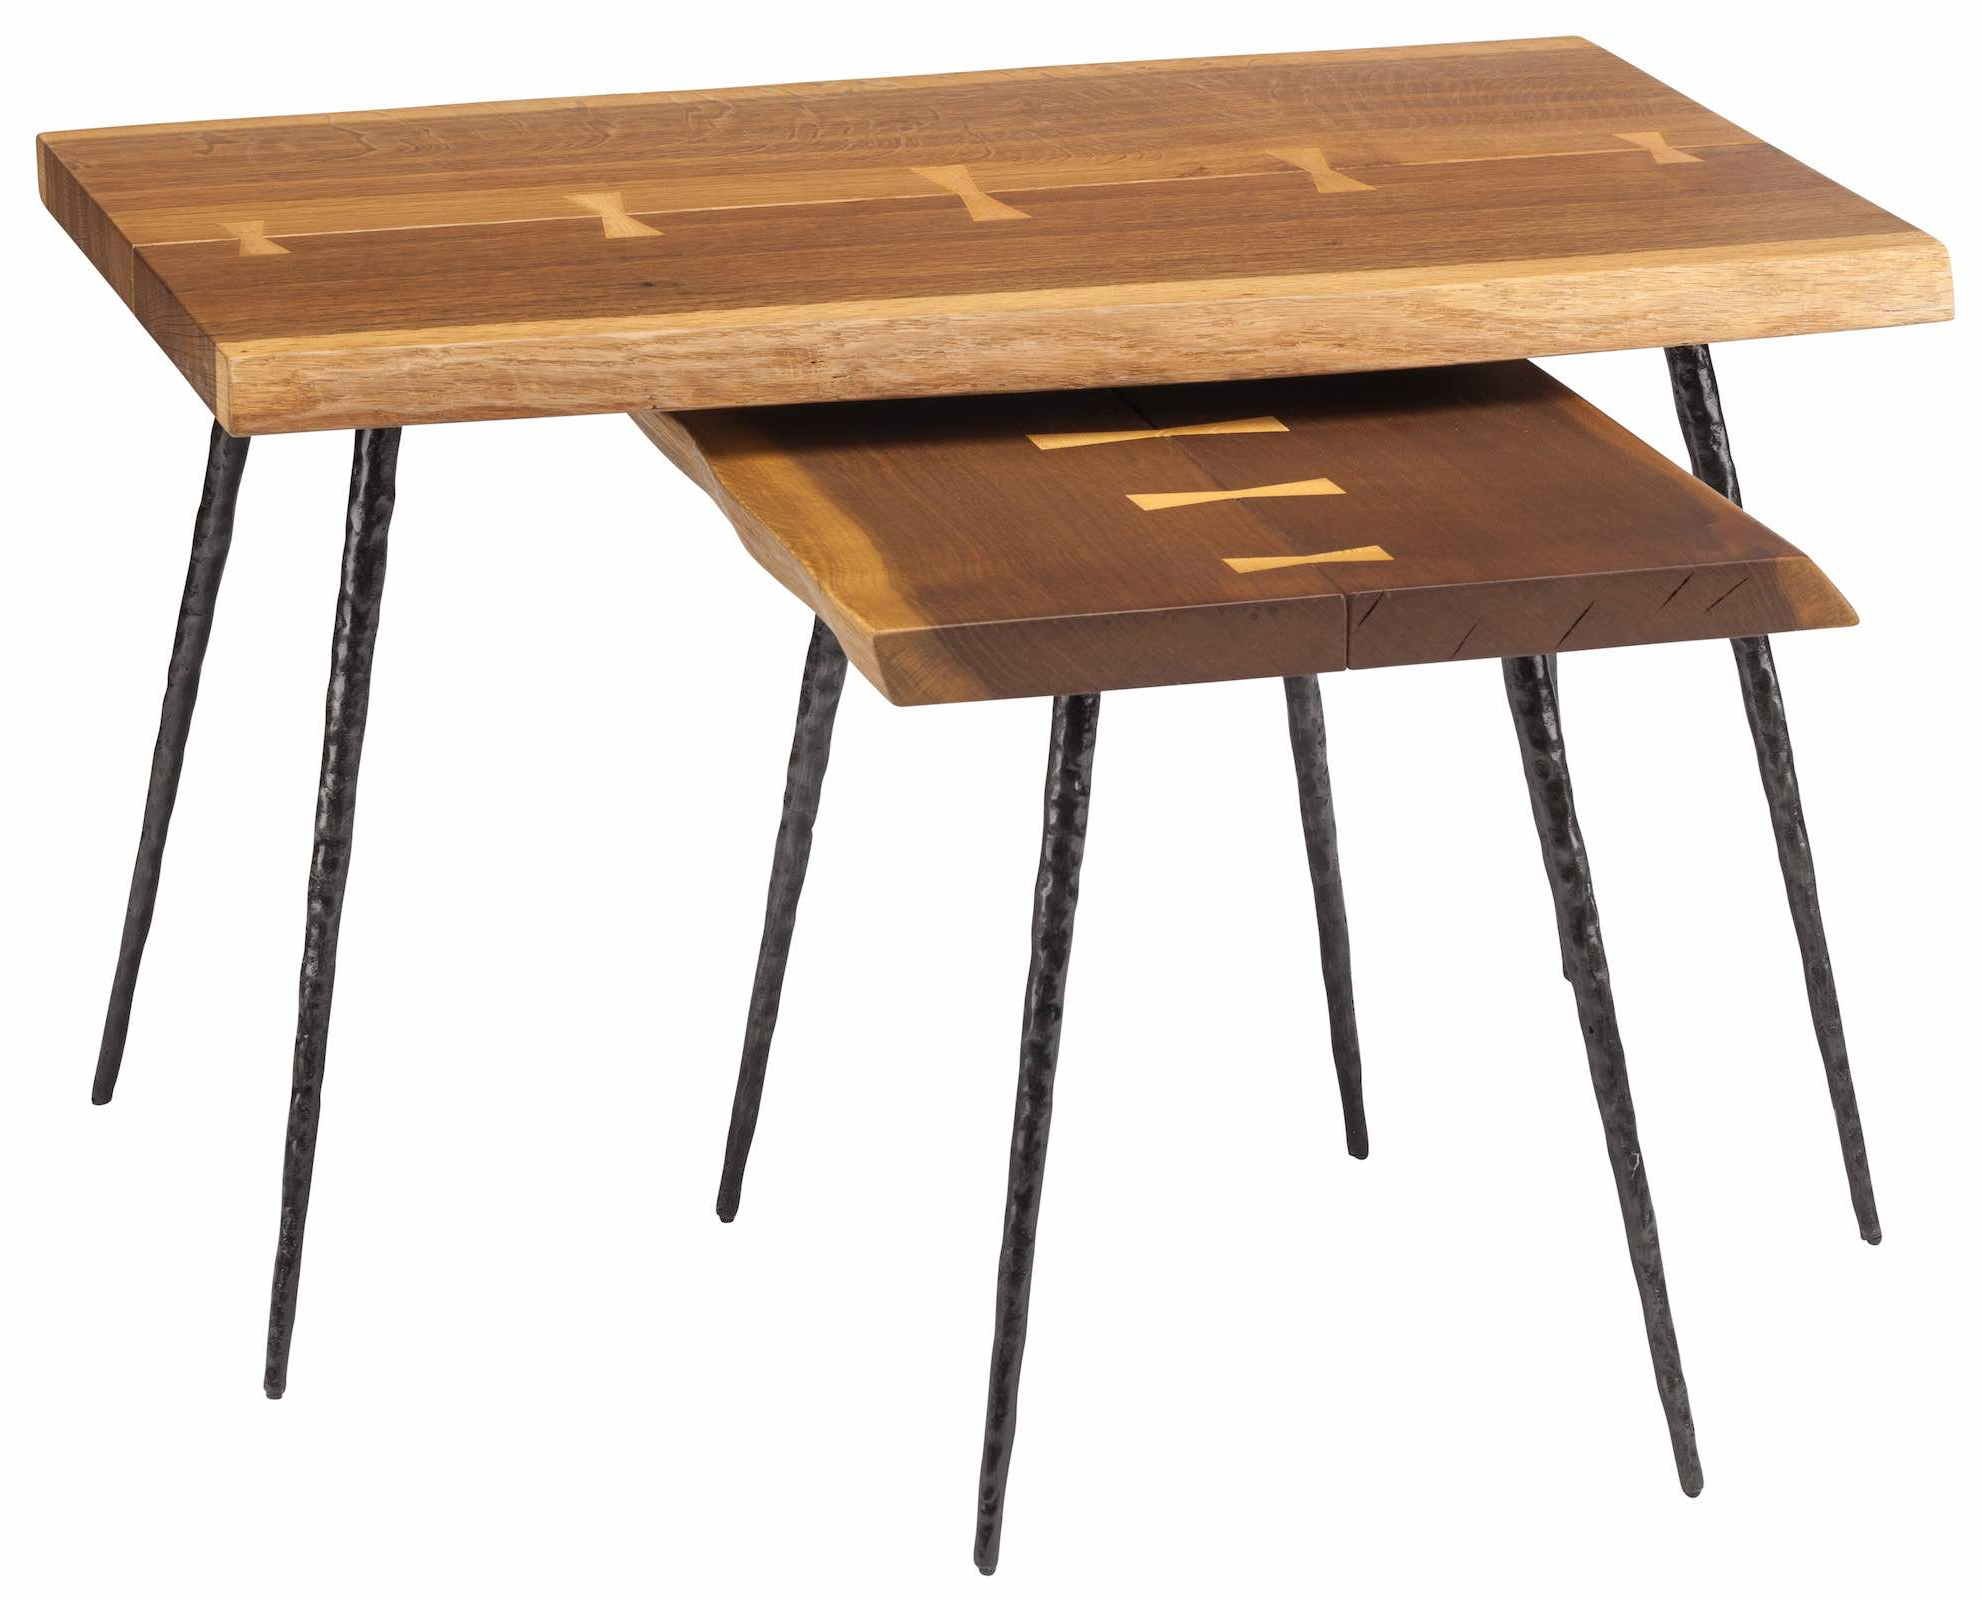 Best And Newest Nexa Nesting Side Tables In Smoked Oak And Cast Iron Feet For Smoked Oak Side Tables (View 6 of 20)